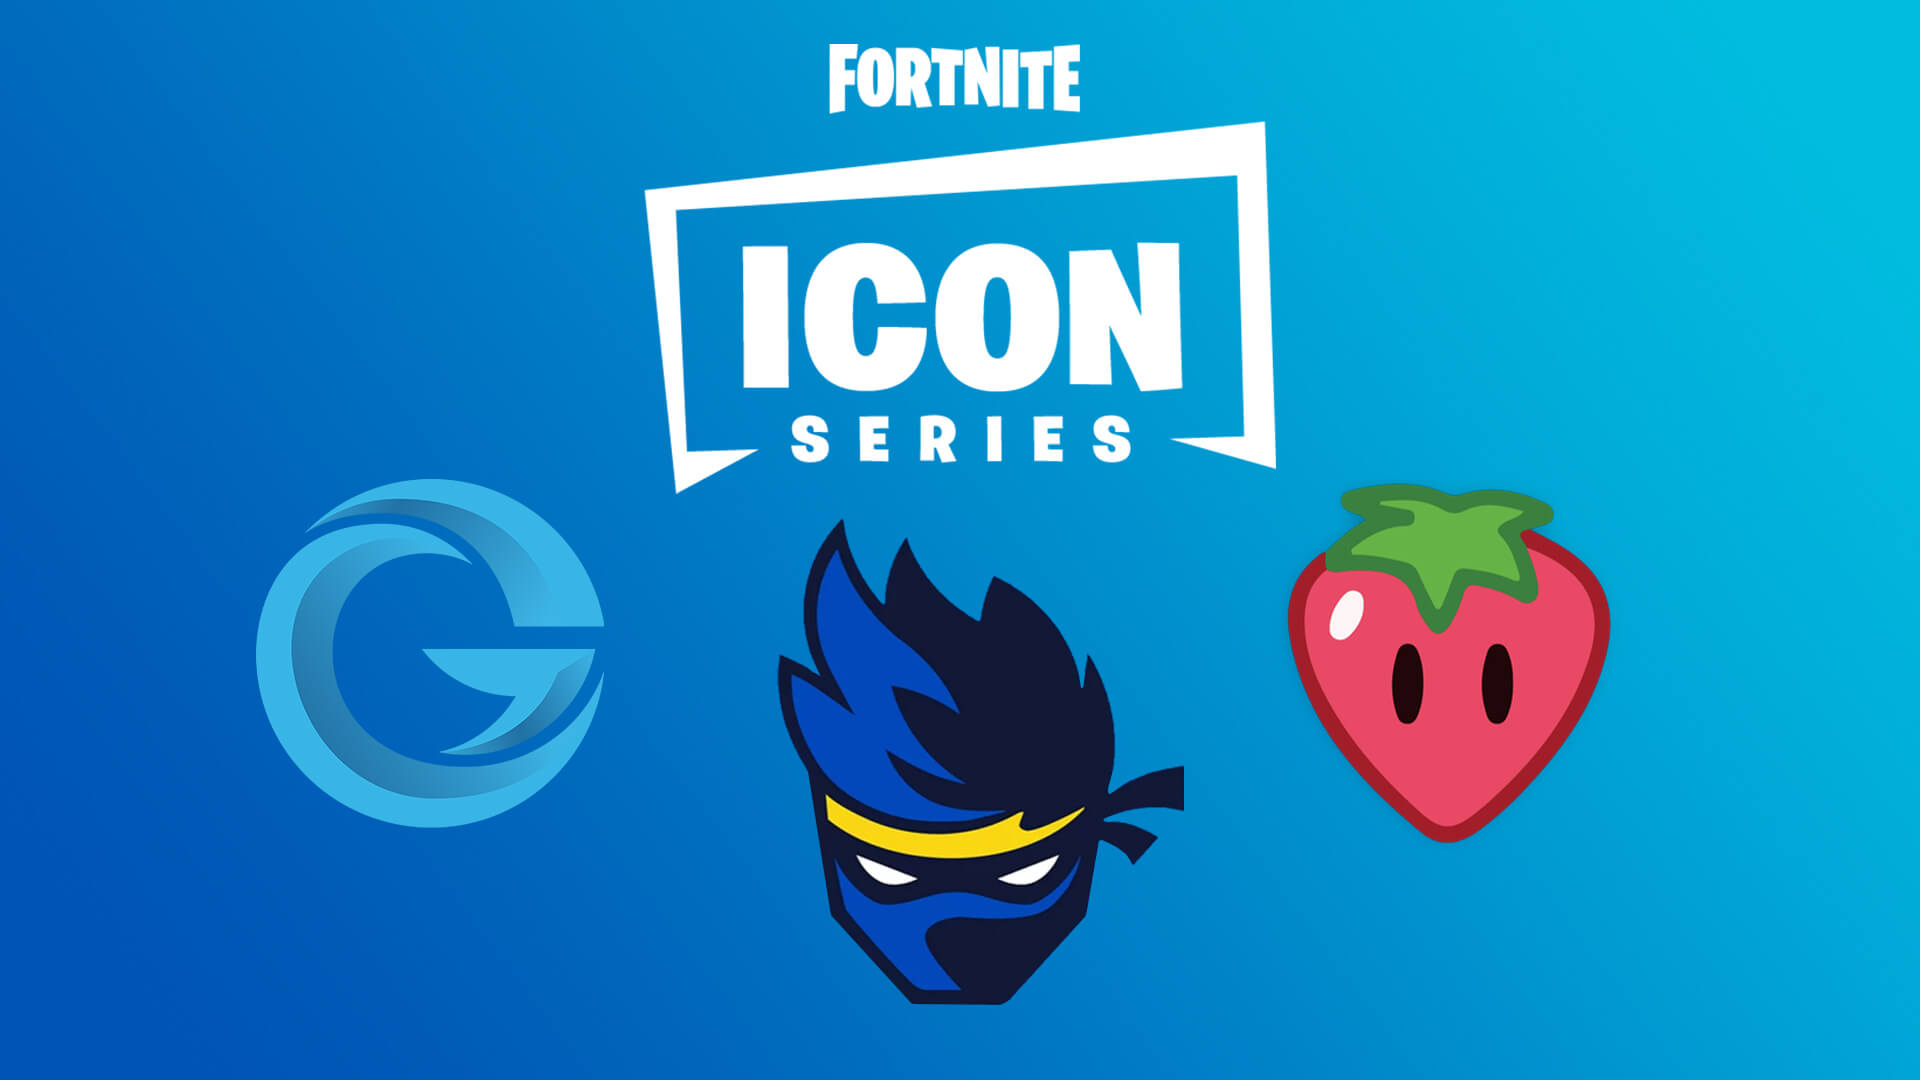 Fortnite Icon Series